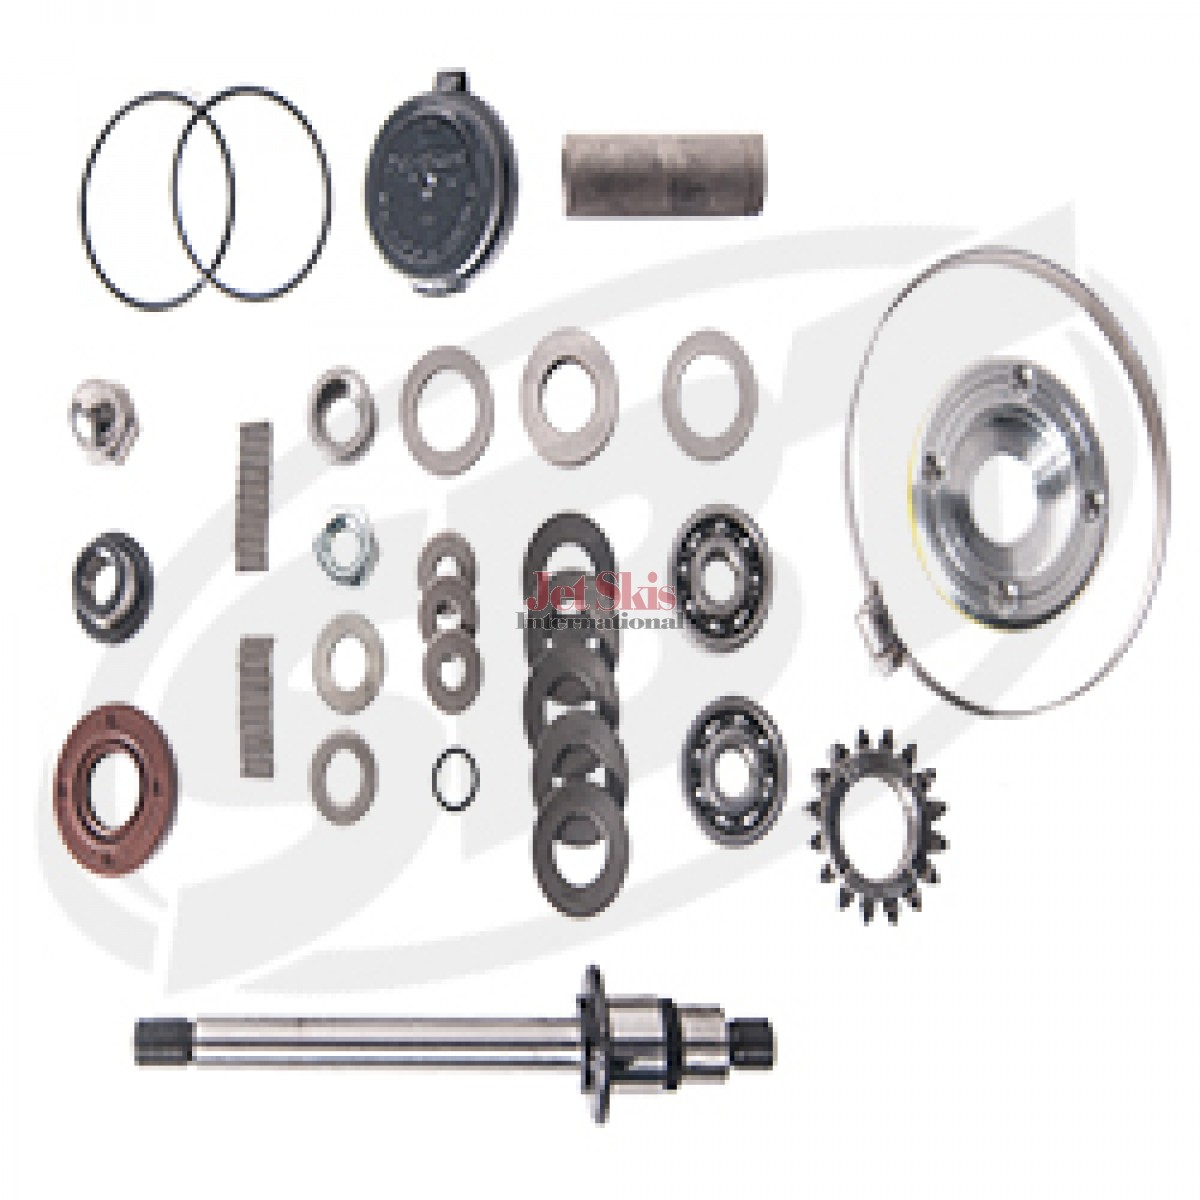 Kawasaki Supercharger Kits: SEA DOO SUPERCHARGER REBUILD KIT GTX/CHALLENGER 180